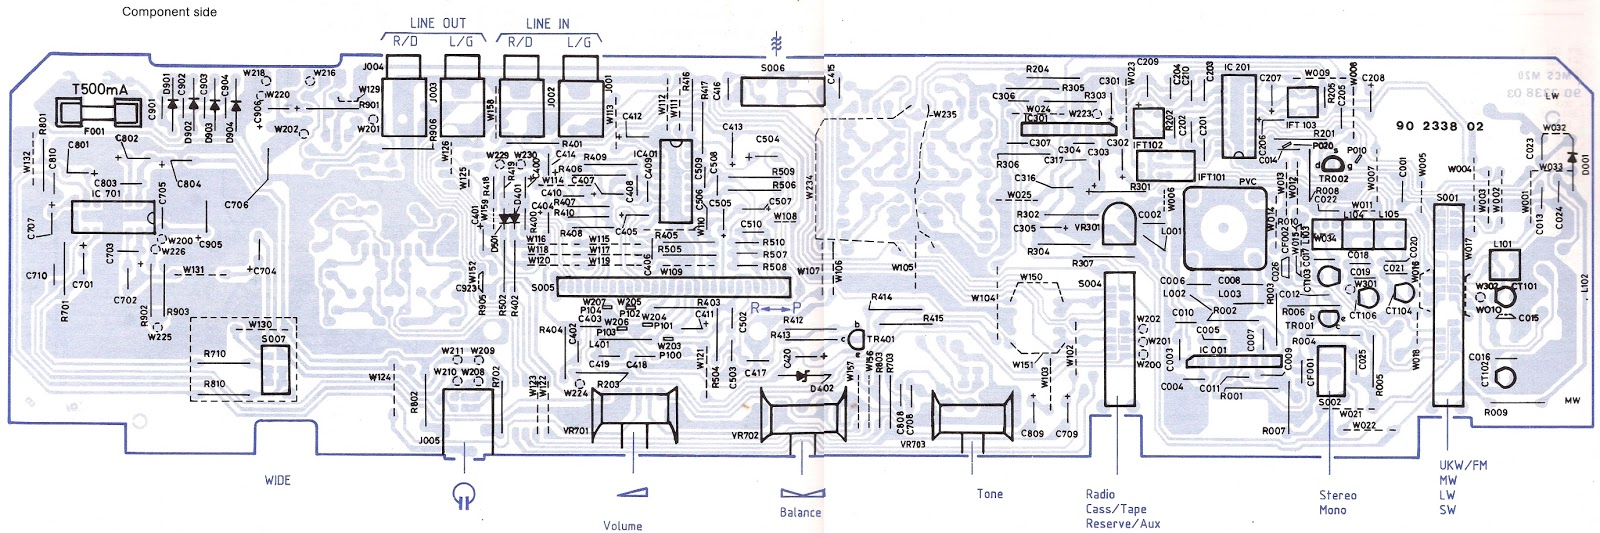 circuit diagram and pwb click on the pictures to magnify  [ 1600 x 533 Pixel ]